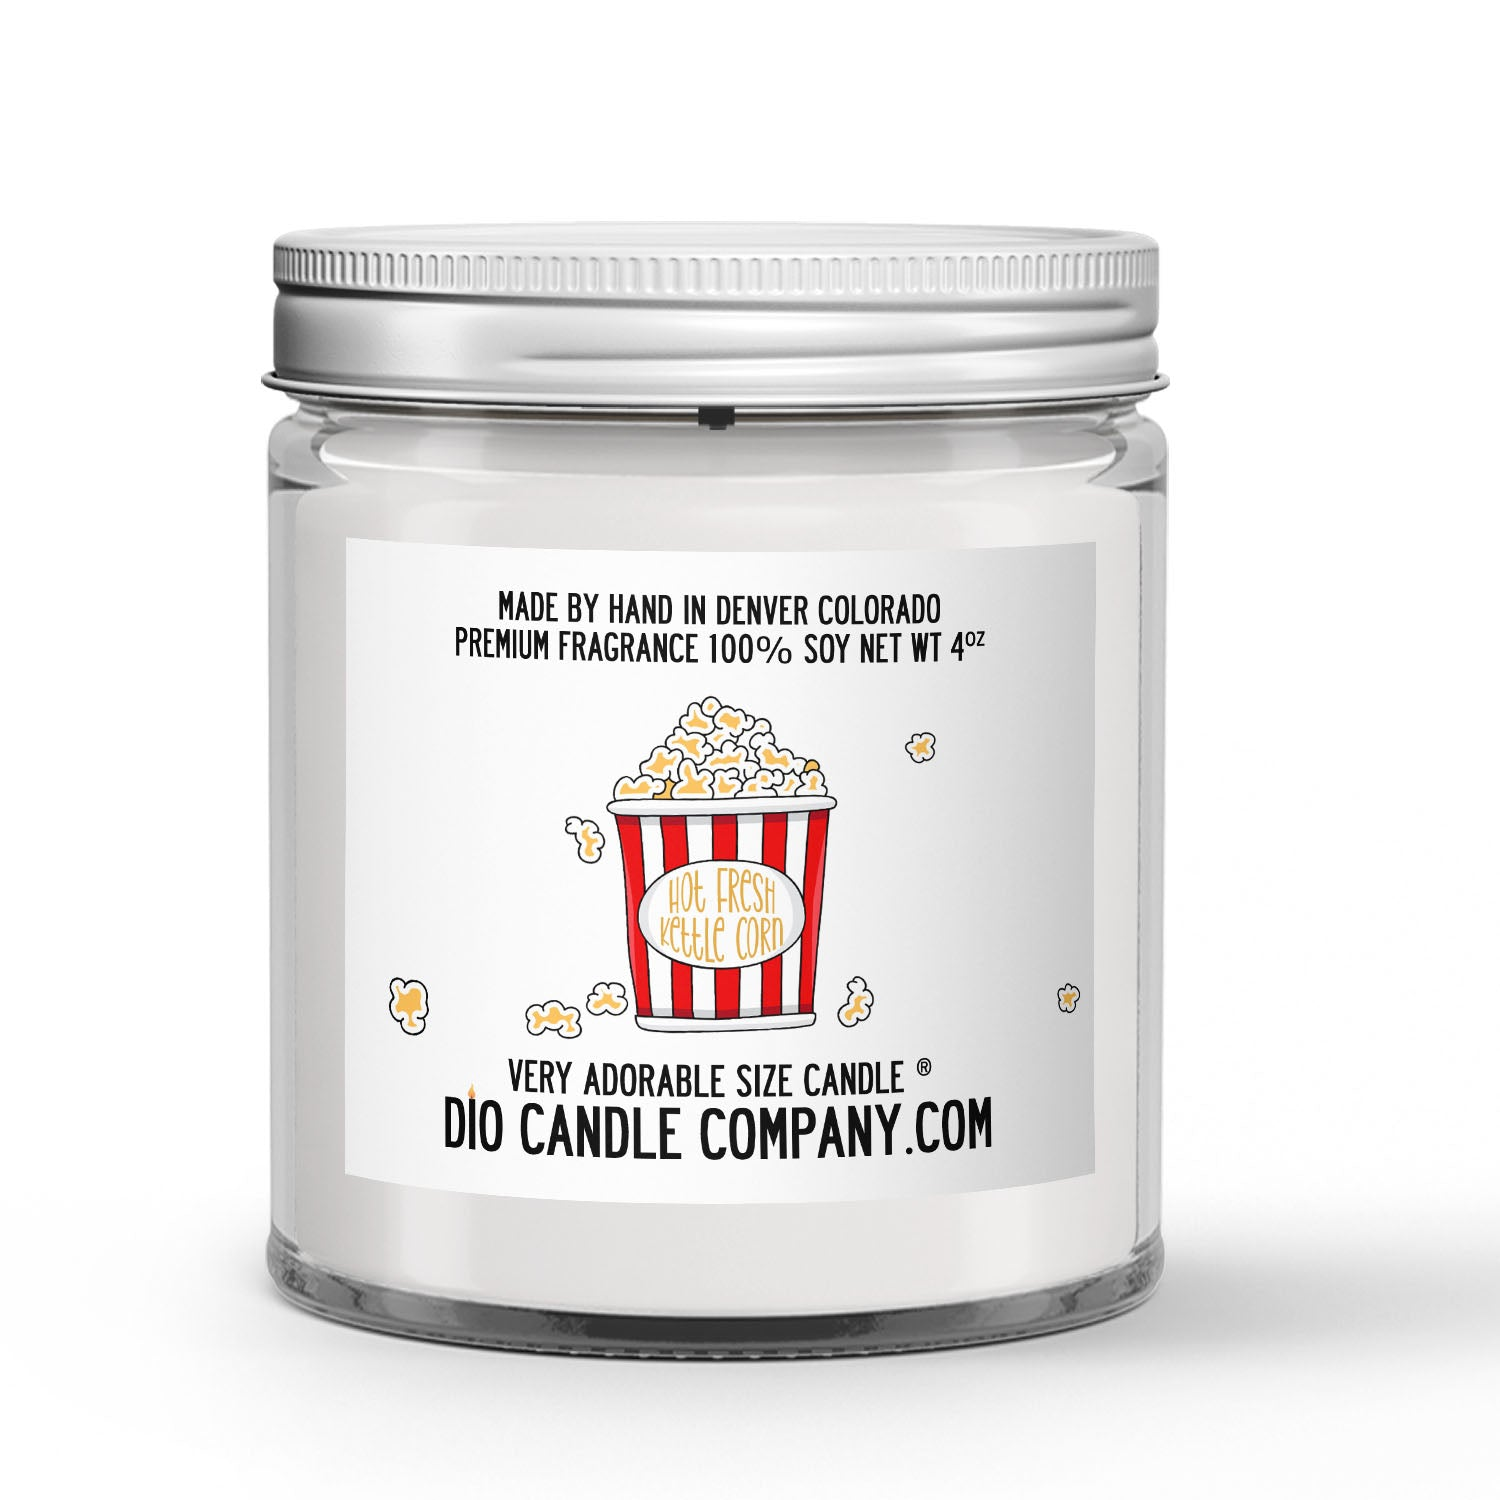 Kettle Corn Candle Sweet Salty Popcorn Scented - Dio Candle Company